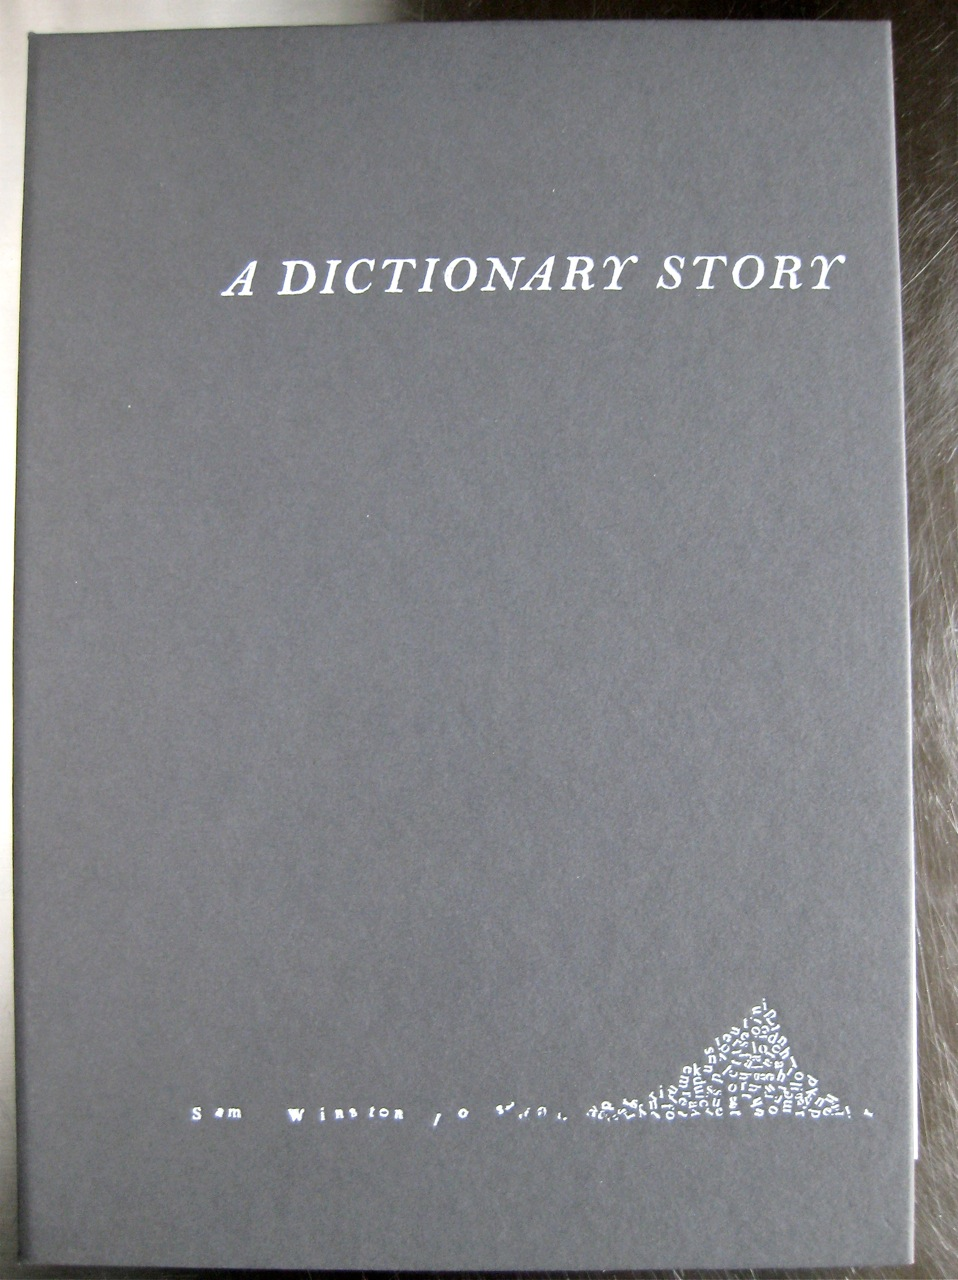 A Dictionary Story by Sam Winston